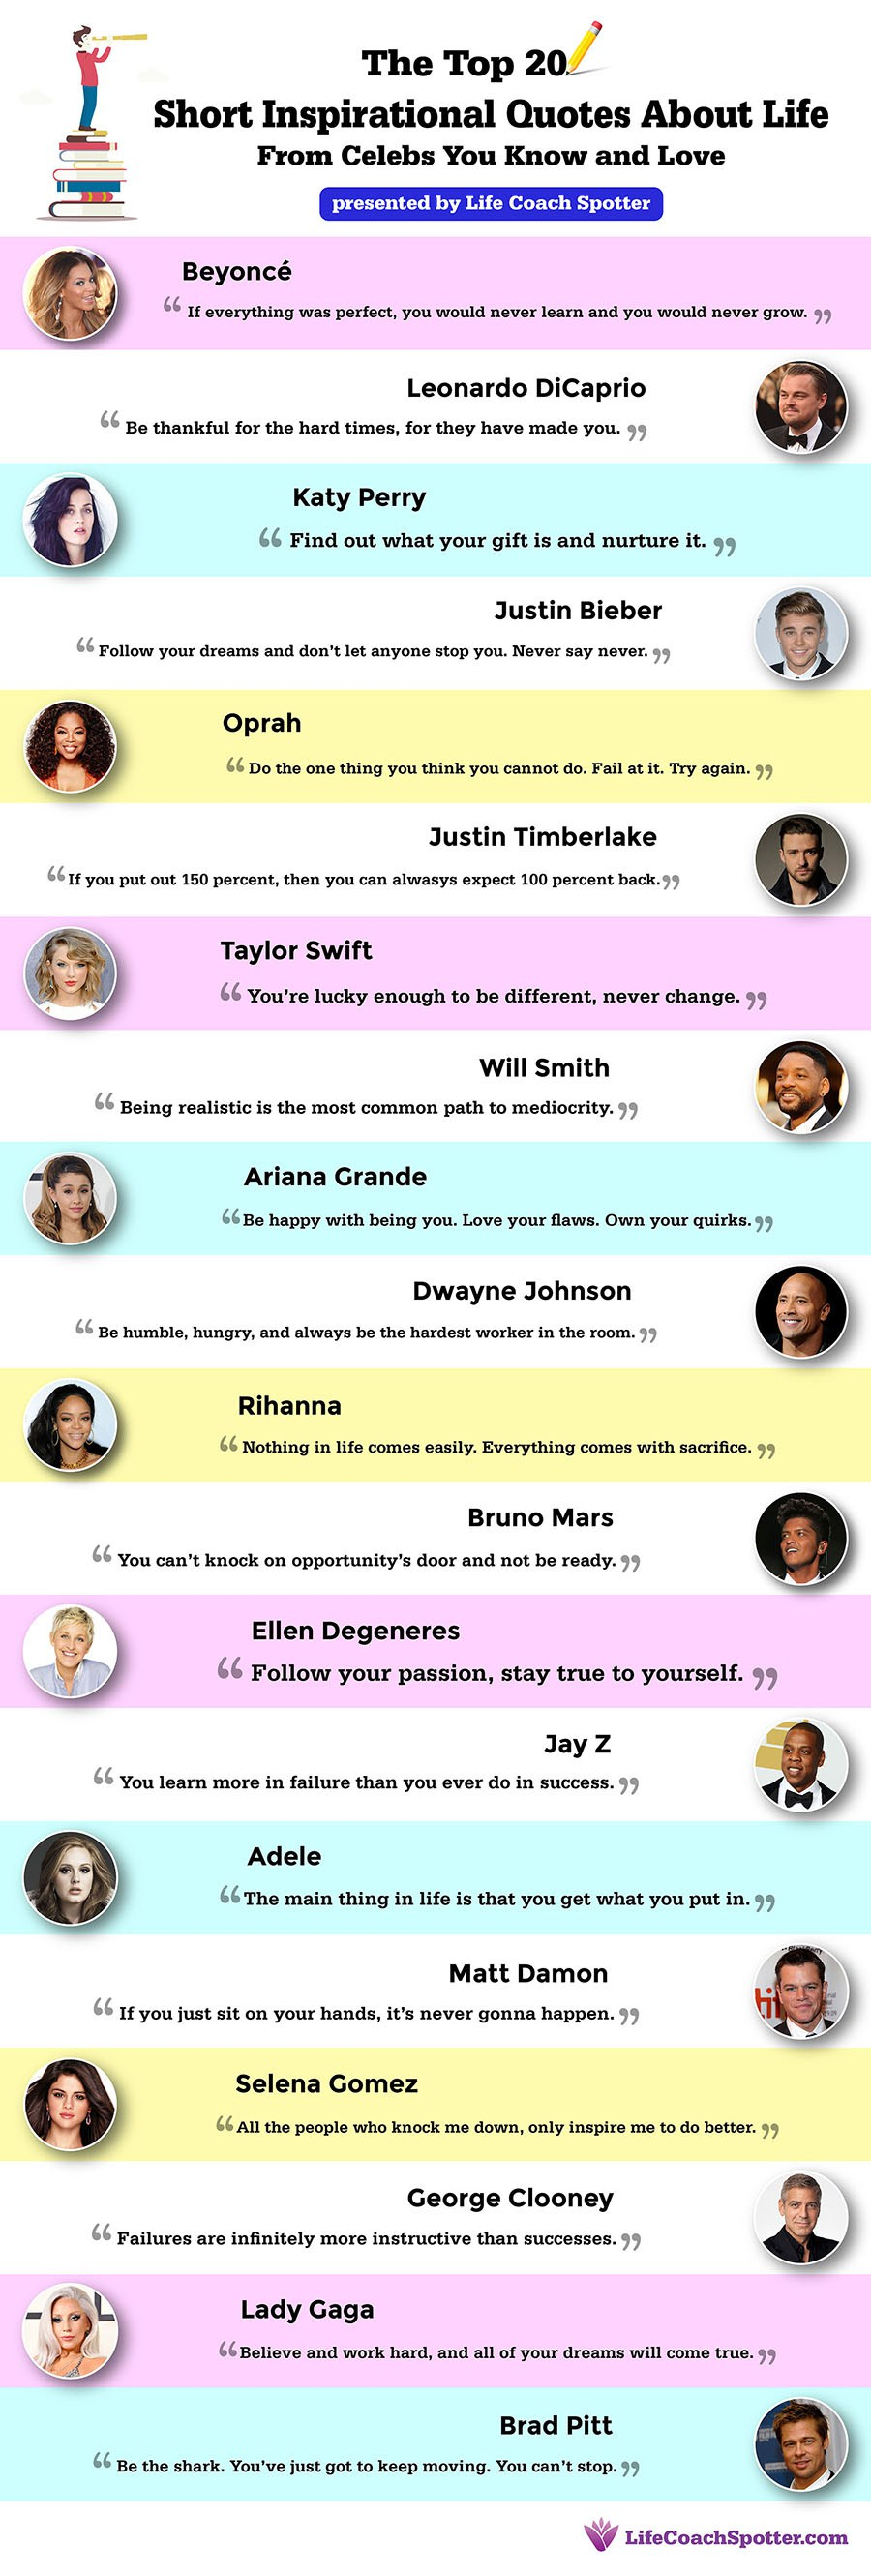 Short Inspirational Quotes On Life [Infographic]